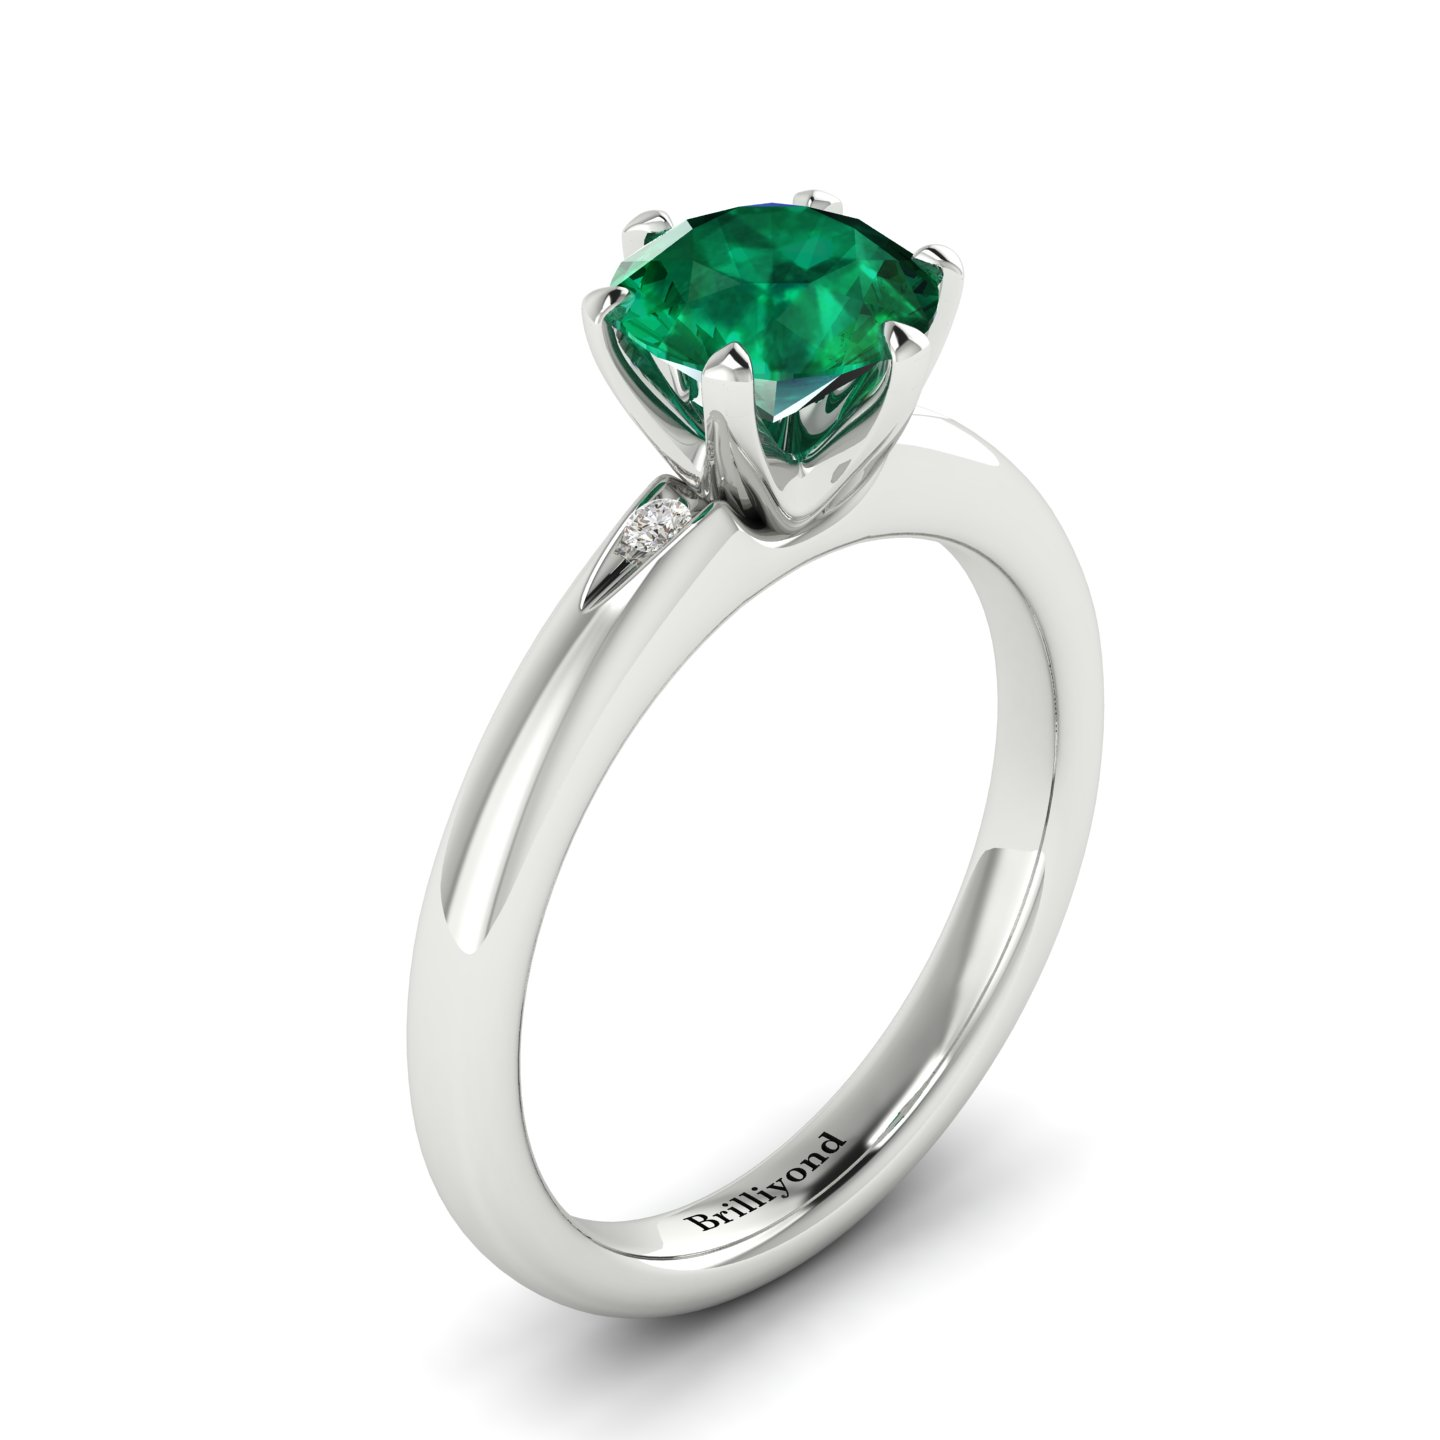 Emerald White Gold Solitaire Engagement Ring Byond_image1